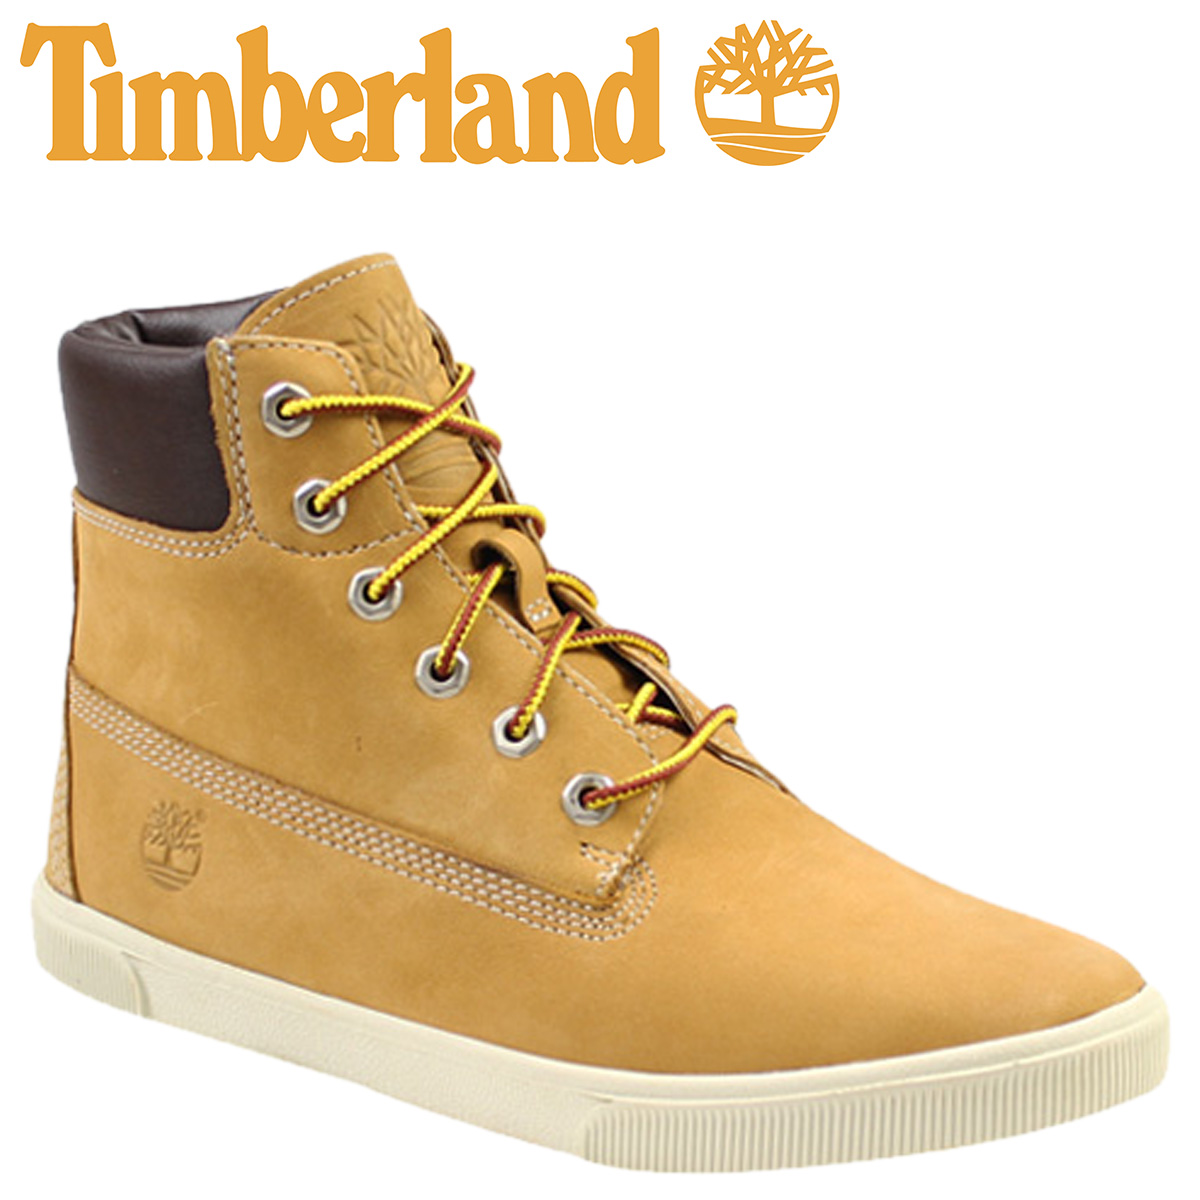 ALLSPORTS  Junior Timberland Timberland women s Earthkeepers slim Cup sole  boots JUNIOR EK SLIM CUPSOLE nubuck 6797R wheat  1   9 new in stock    regular  ... 359ebc1dc